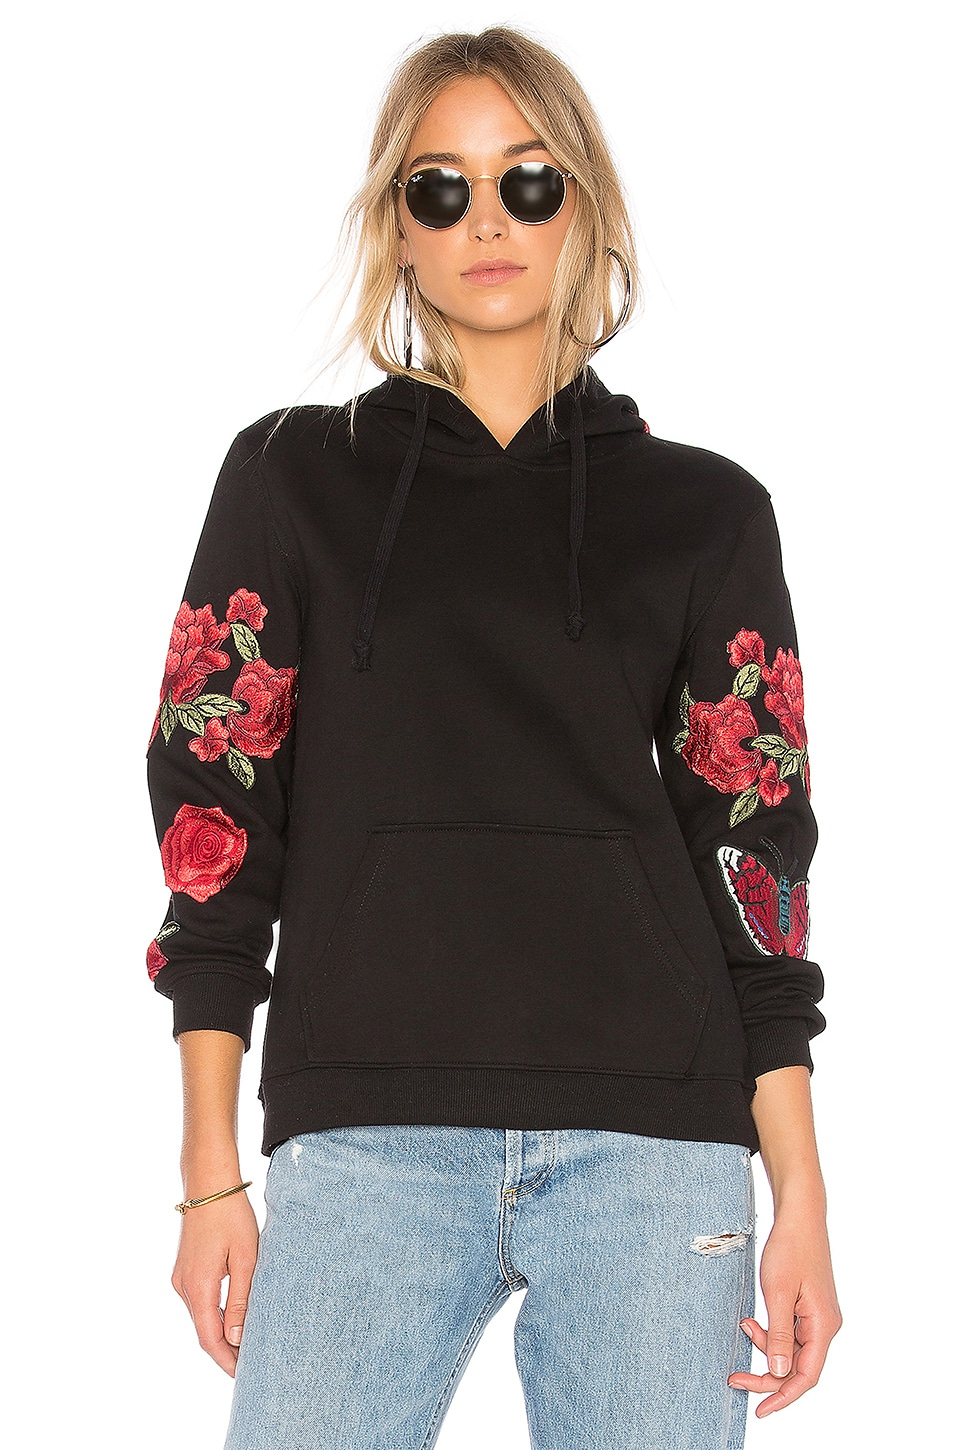 Central Park West Abbot Kinney Rose Hoodie in Black